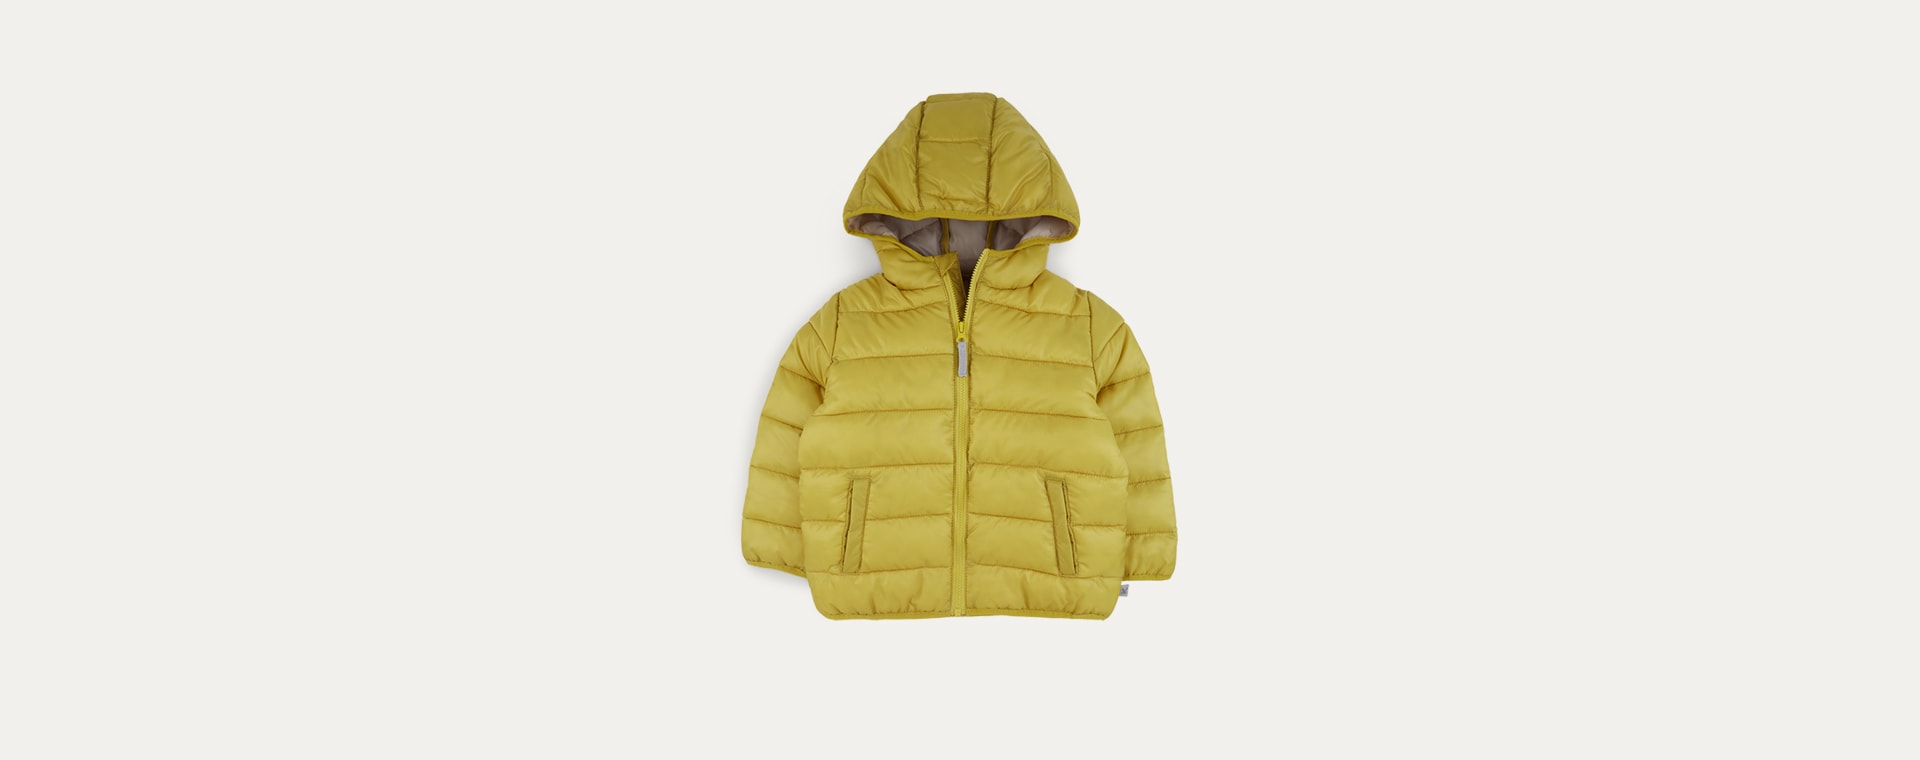 Dijon KIDLY Label Recycled Puffer